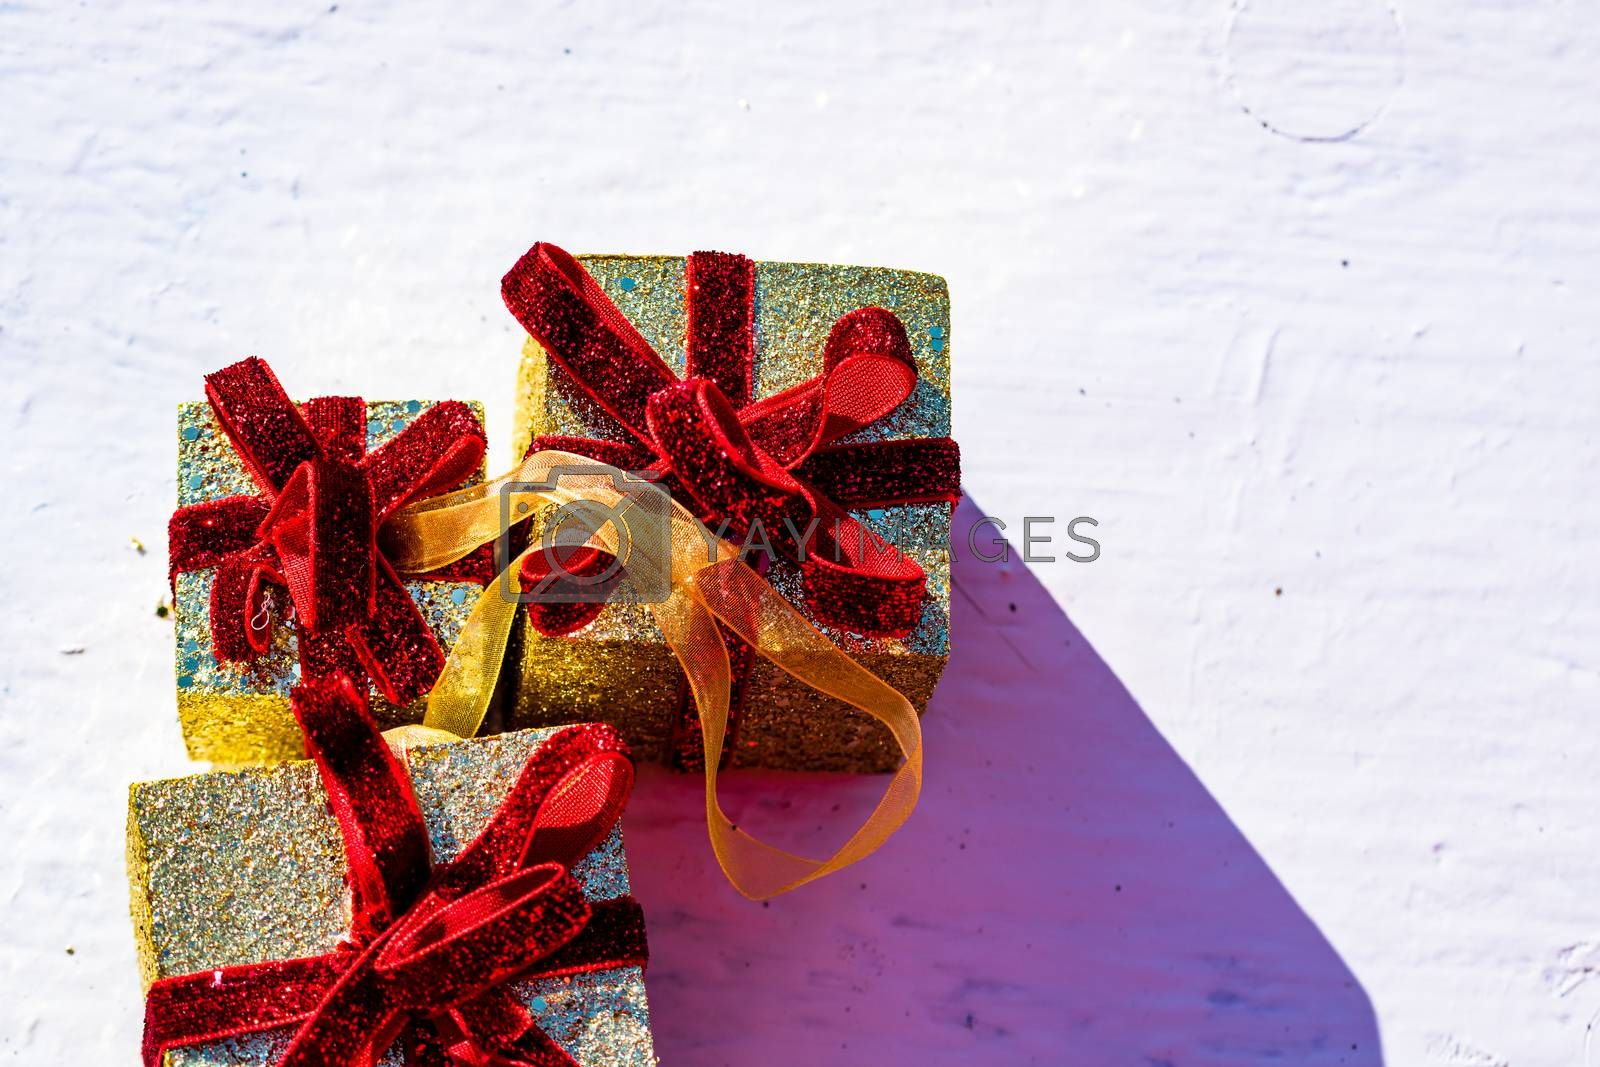 Glittery Christmas gifts. Christmas present boxex decorations isolated.